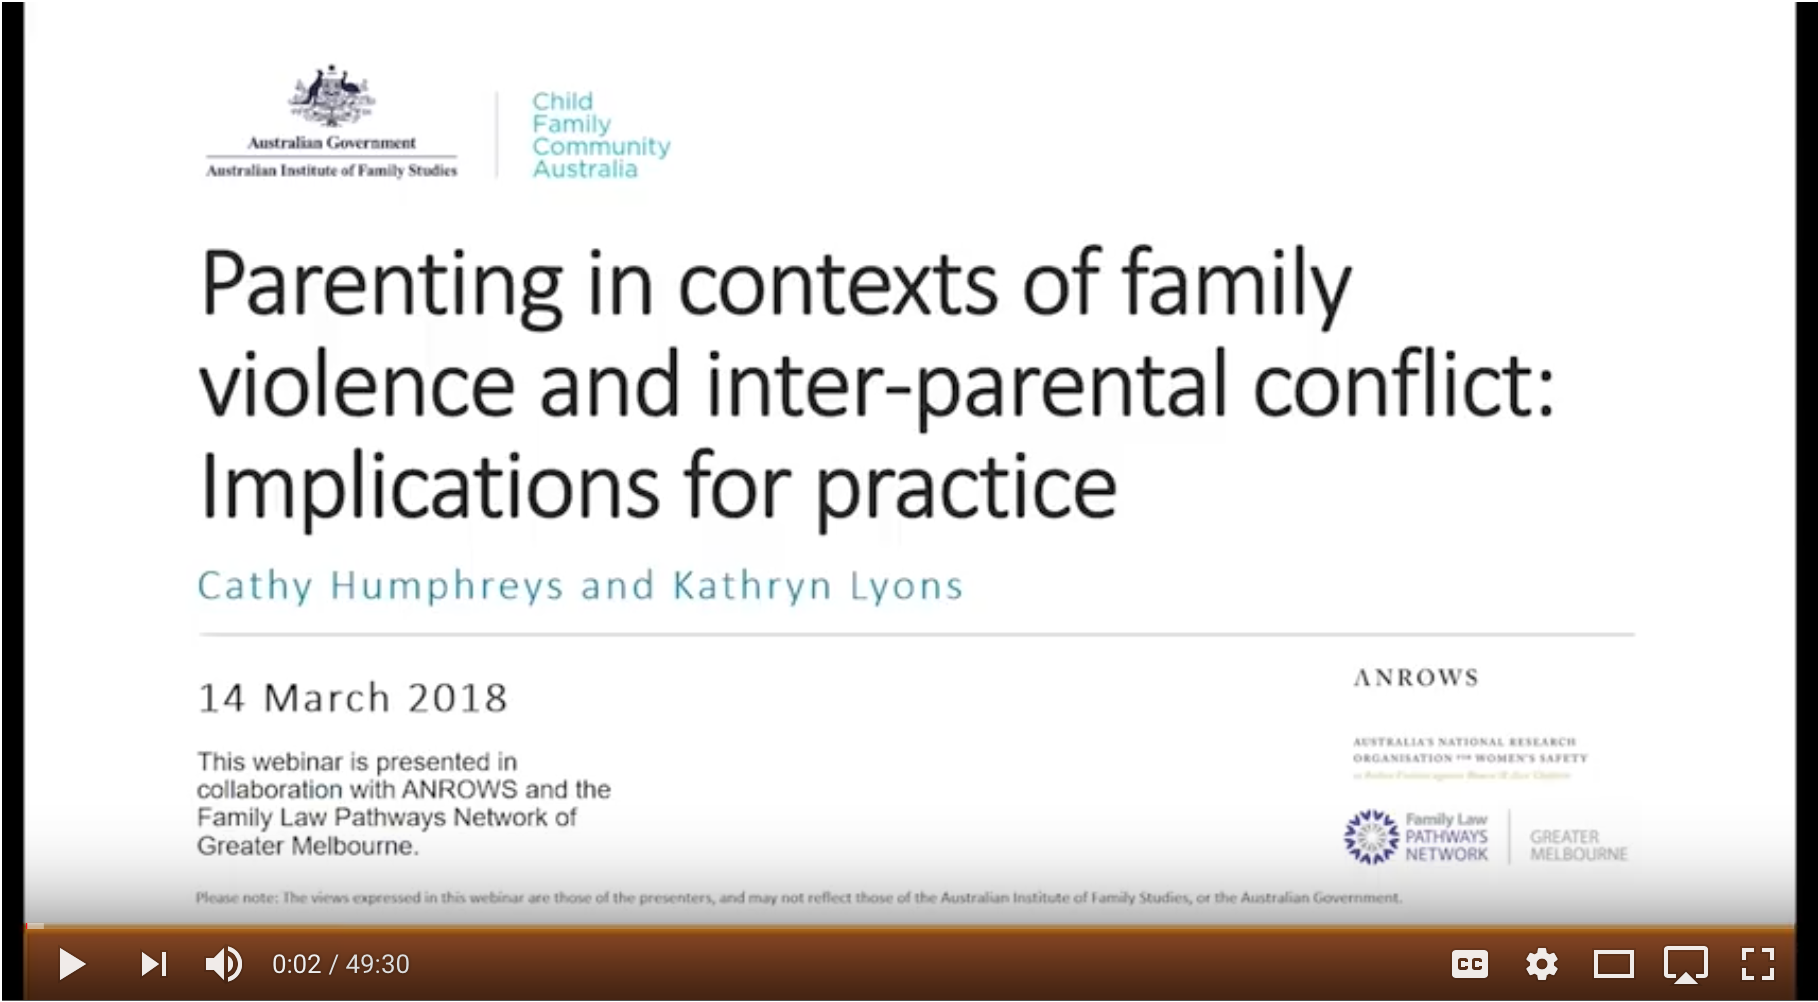 Webinar: Parenting in contexts of family violence and inter-parental conflict